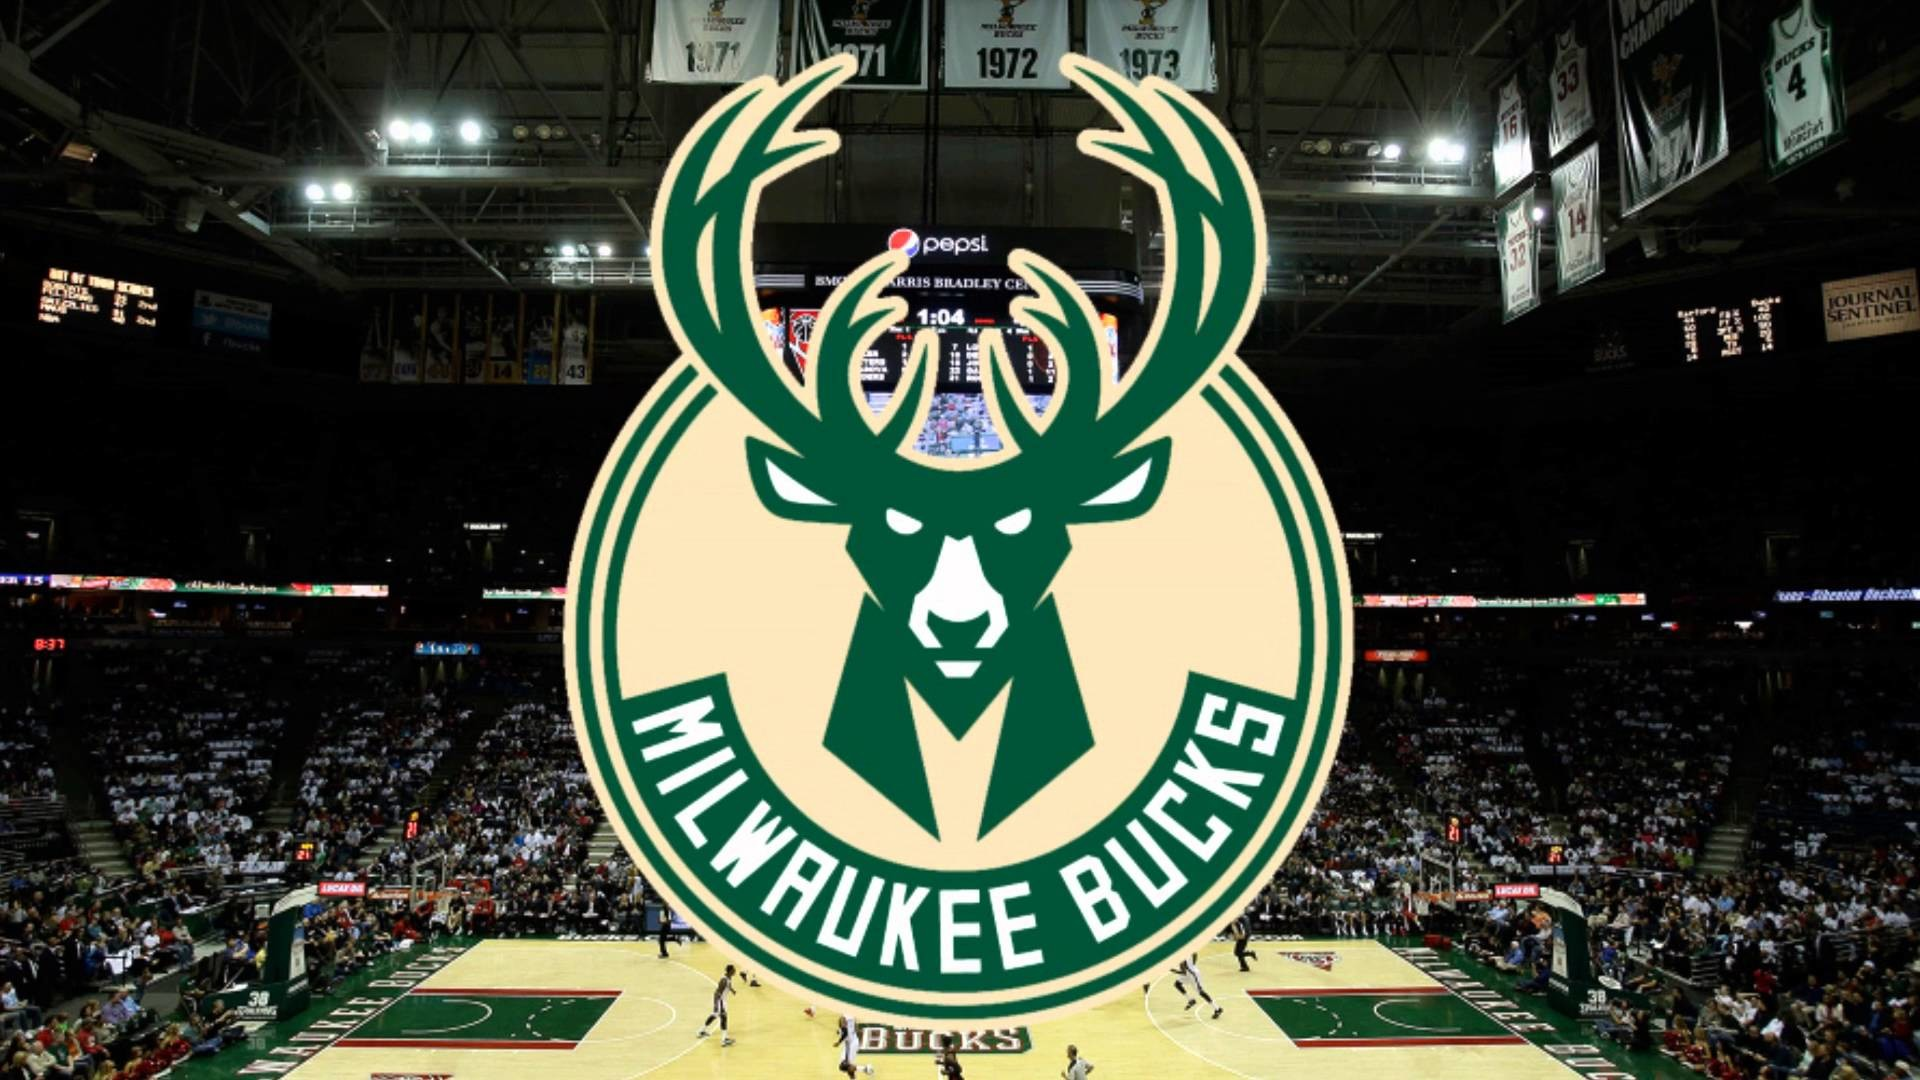 1920x1080 NBA - Milwaukee bucks animation 3D logo